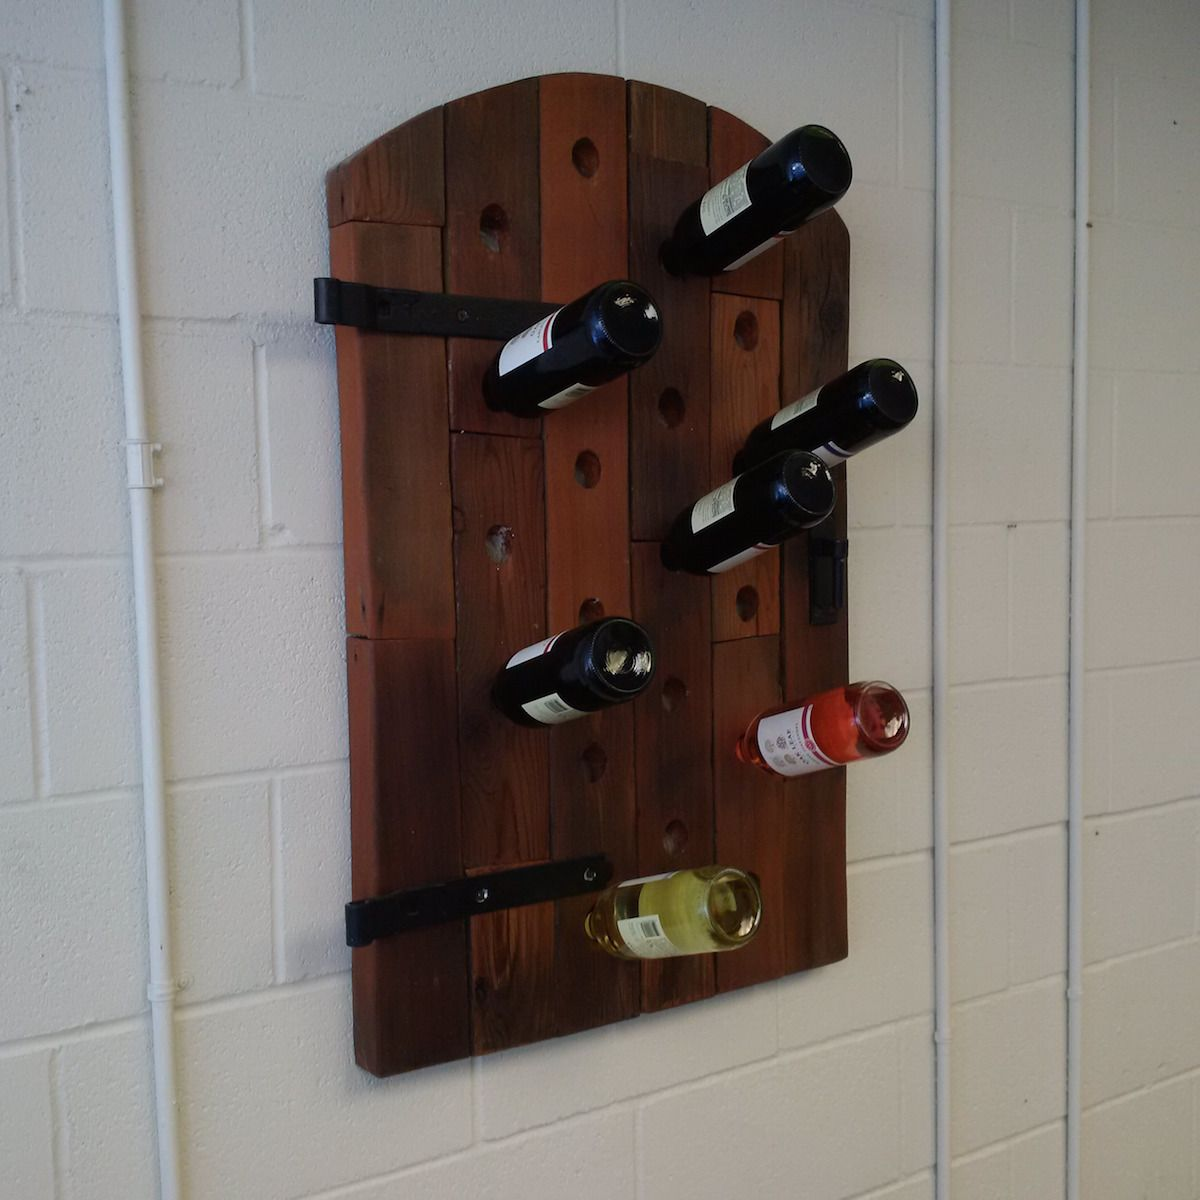 Buy a Handmade Barn Wood Wine Rack, made to order from ... |Unique Wood Wine Rack